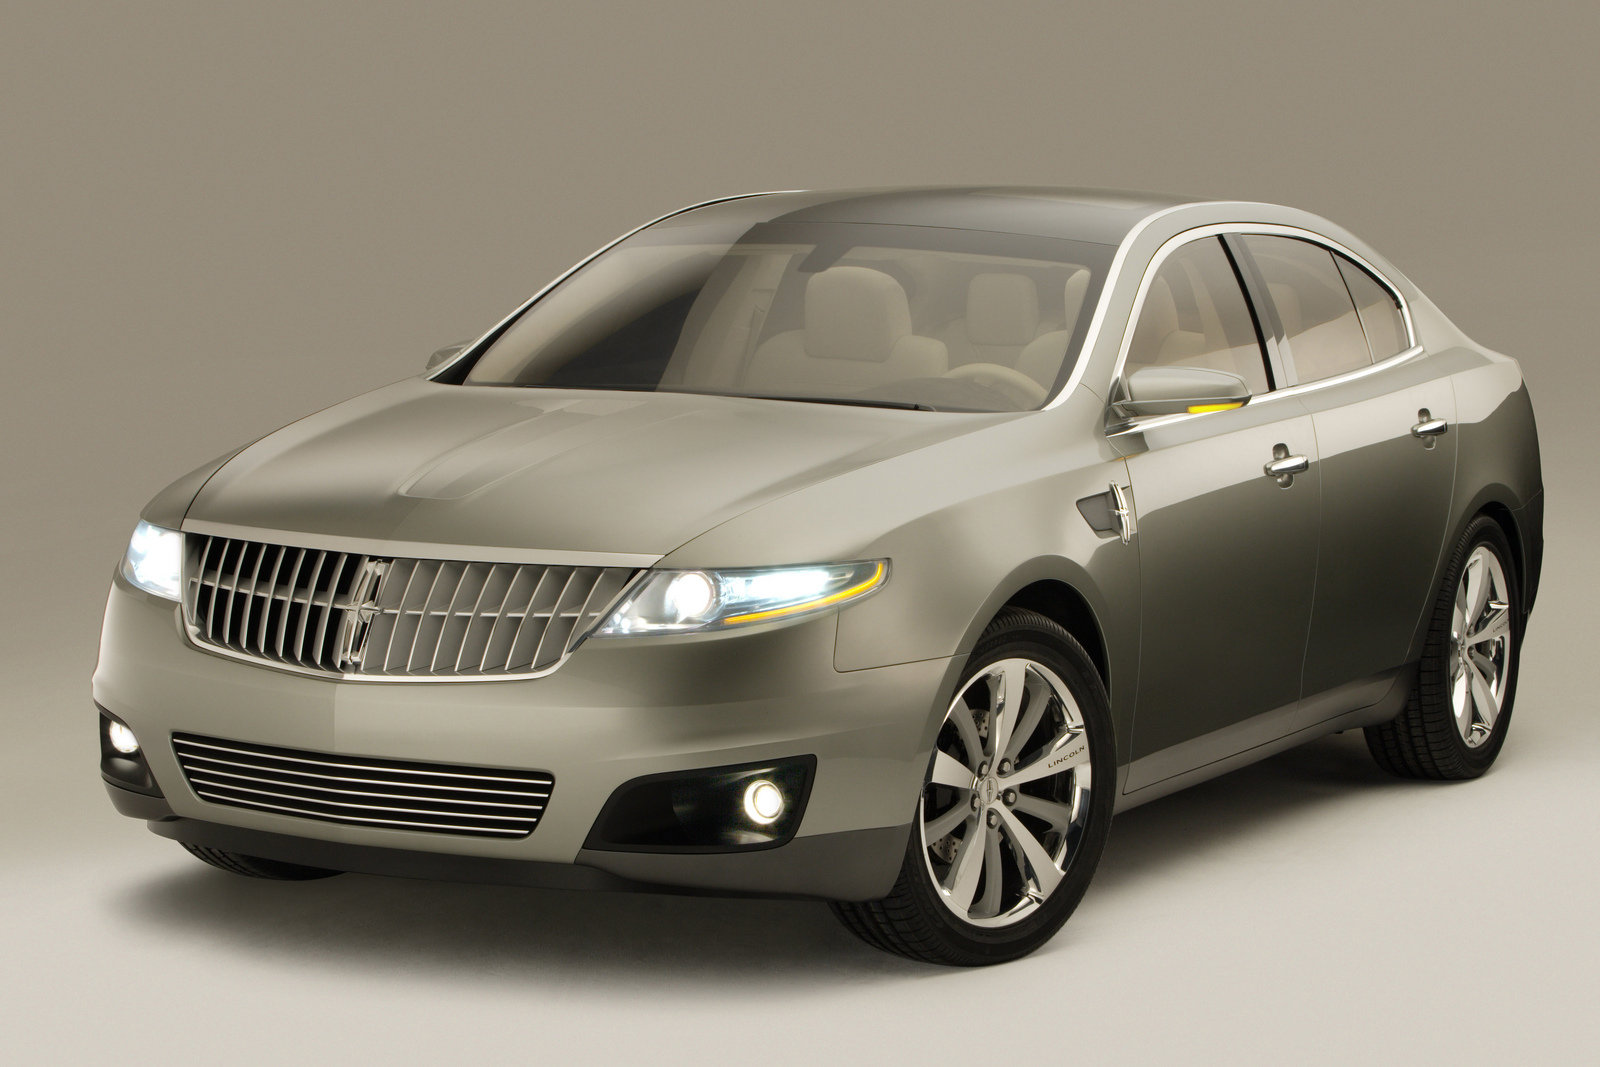 Led Lights For Cars >> 2006 Lincoln MKS Review - Top Speed